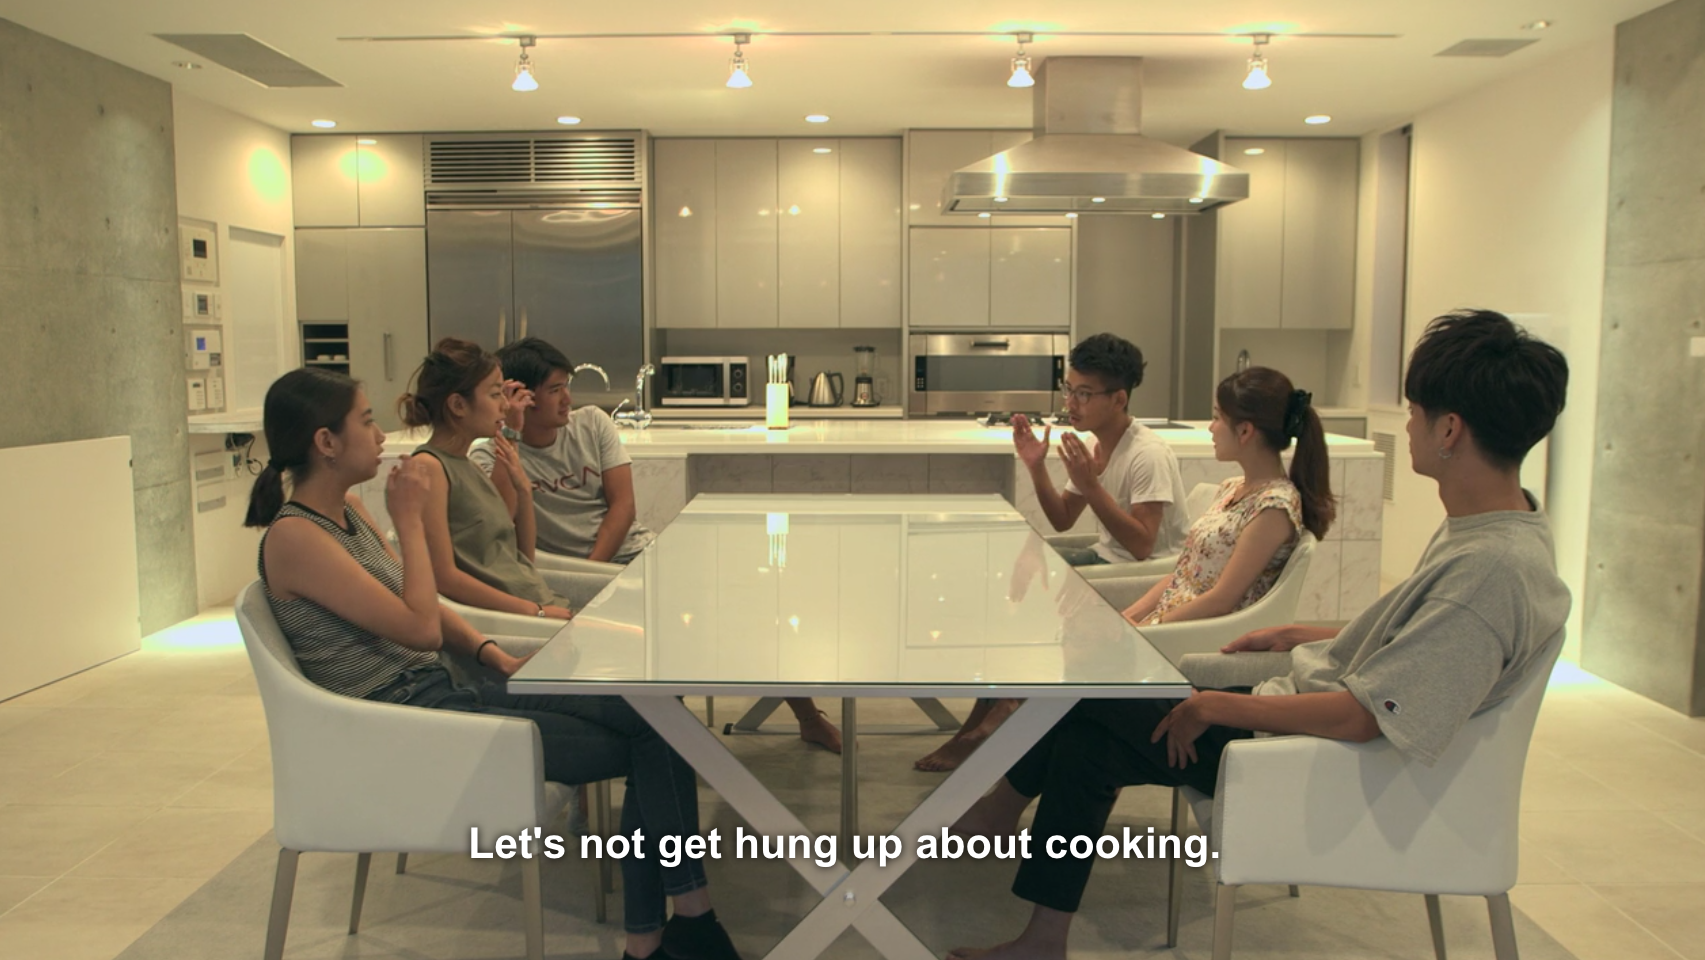 Terrace house fixes what s broken in reality tv polygon for Terrace house tv